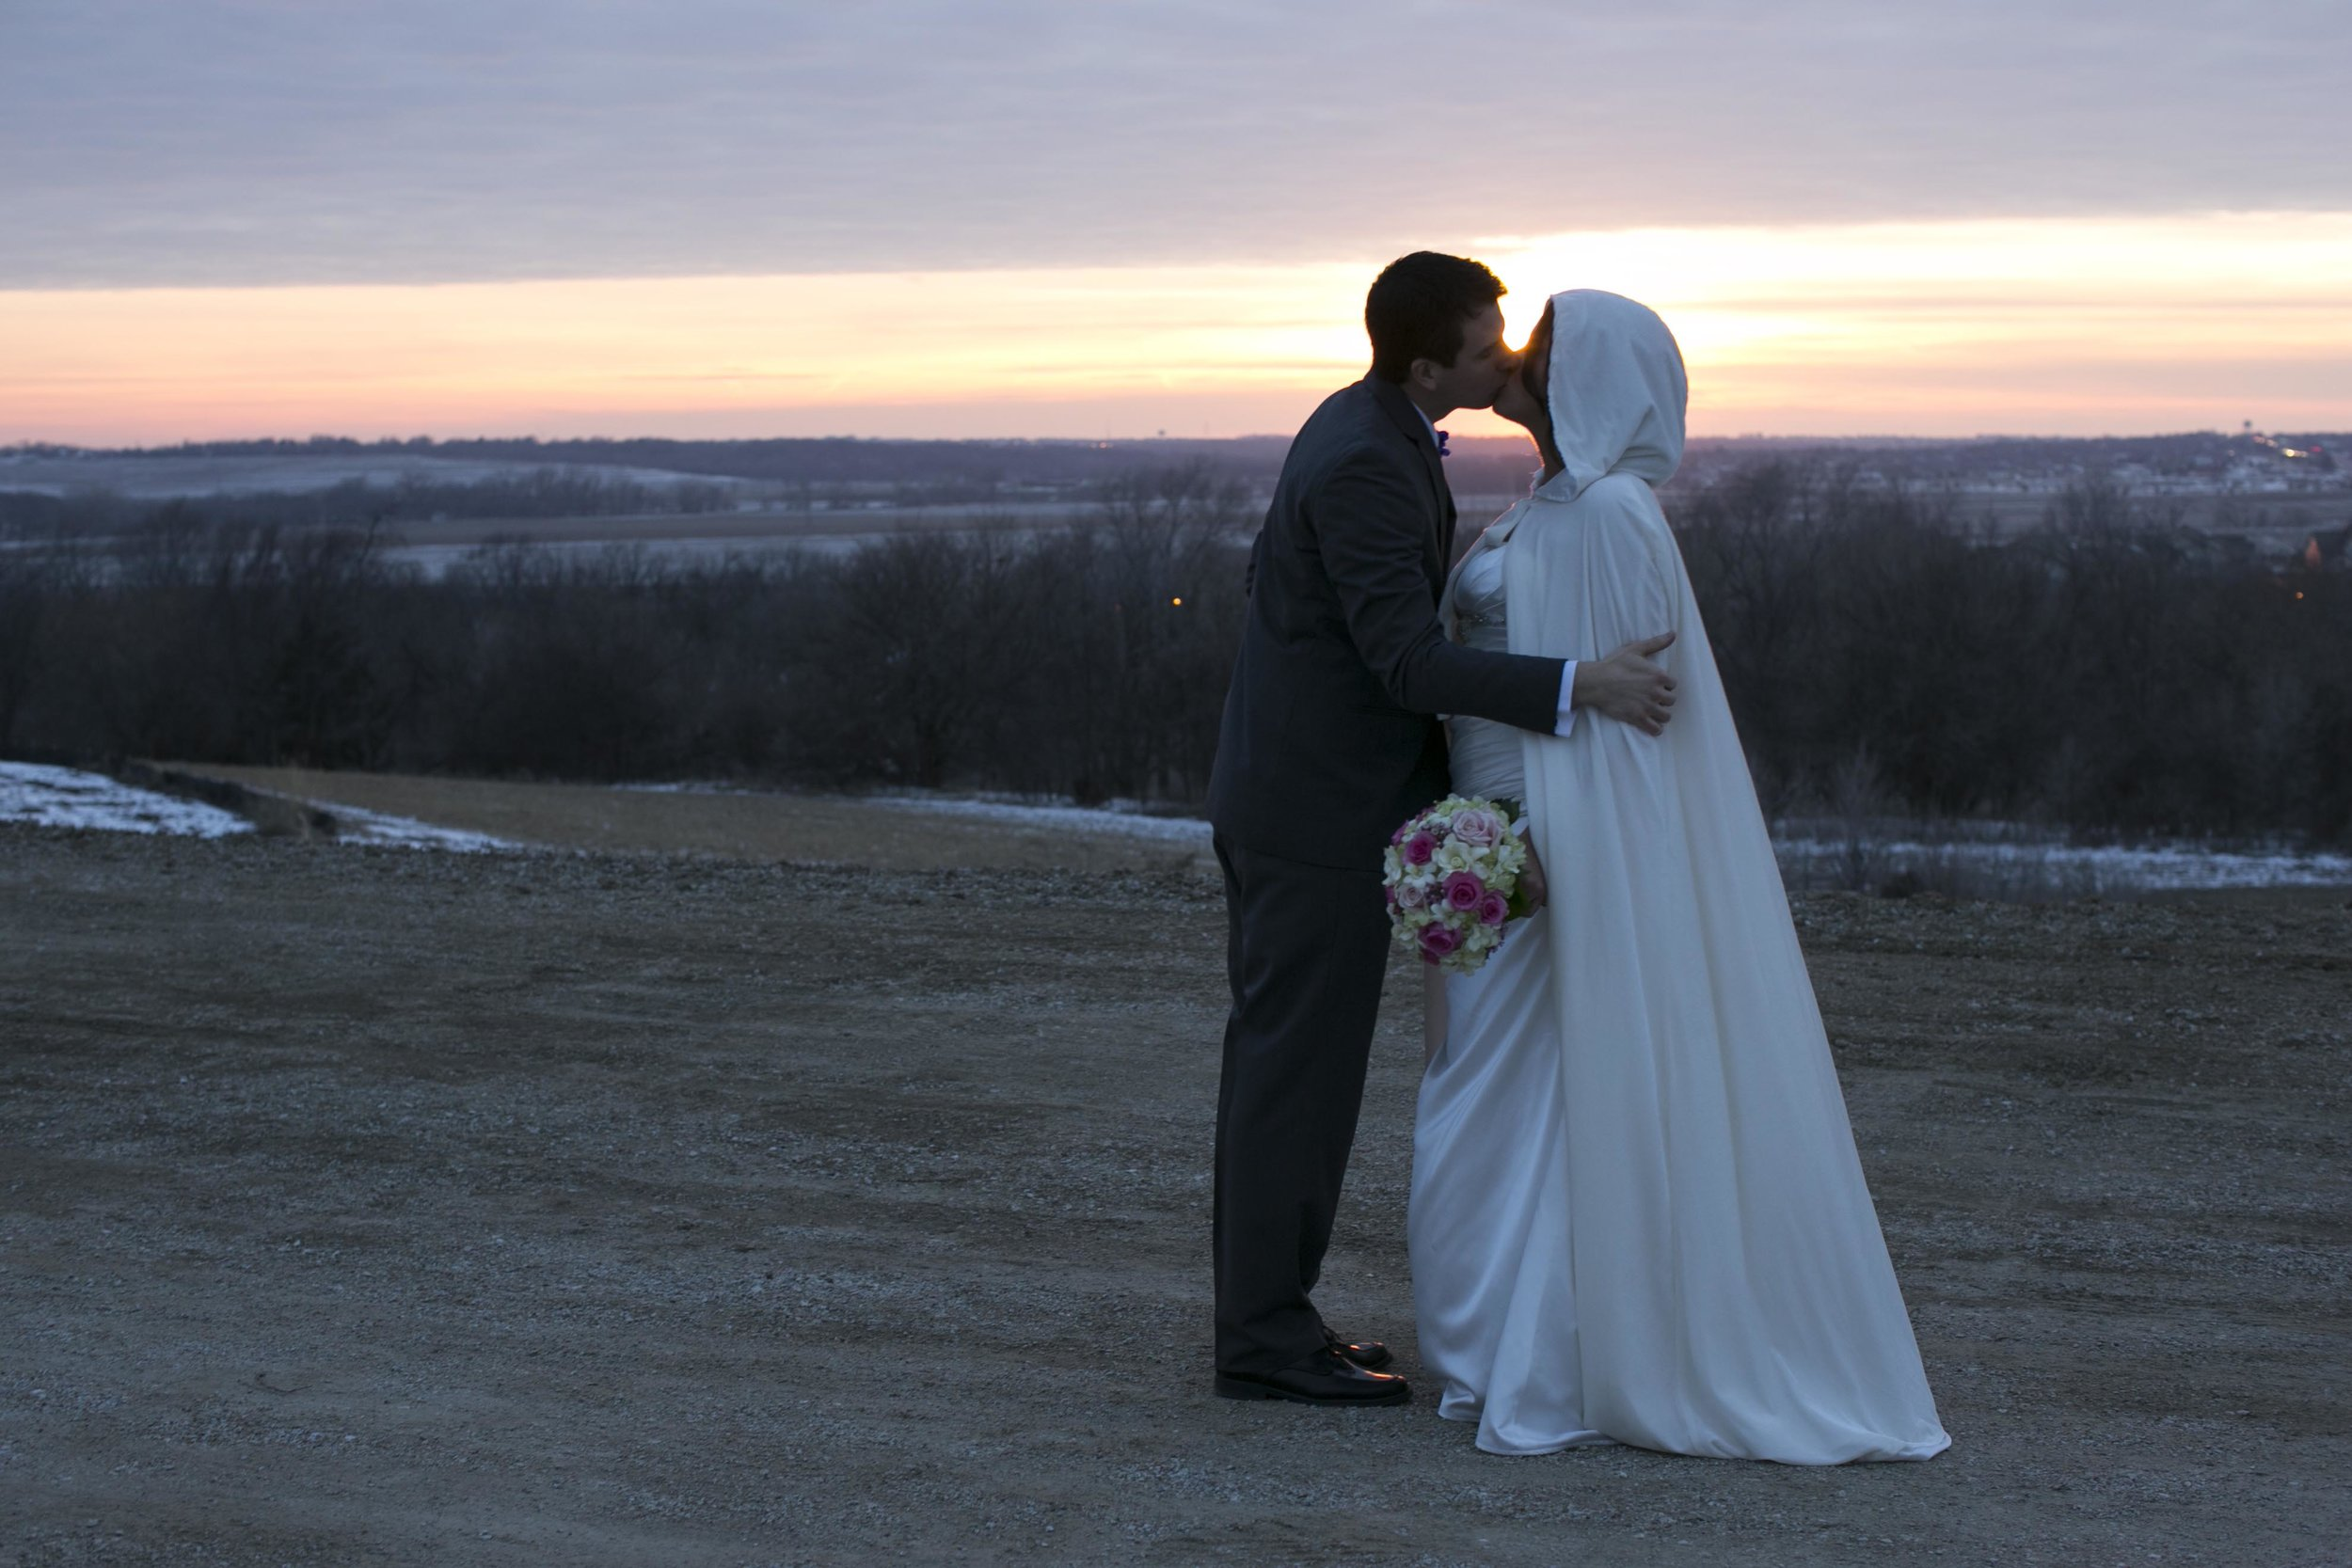 Rebecca and Glen - A real nebraska wedding